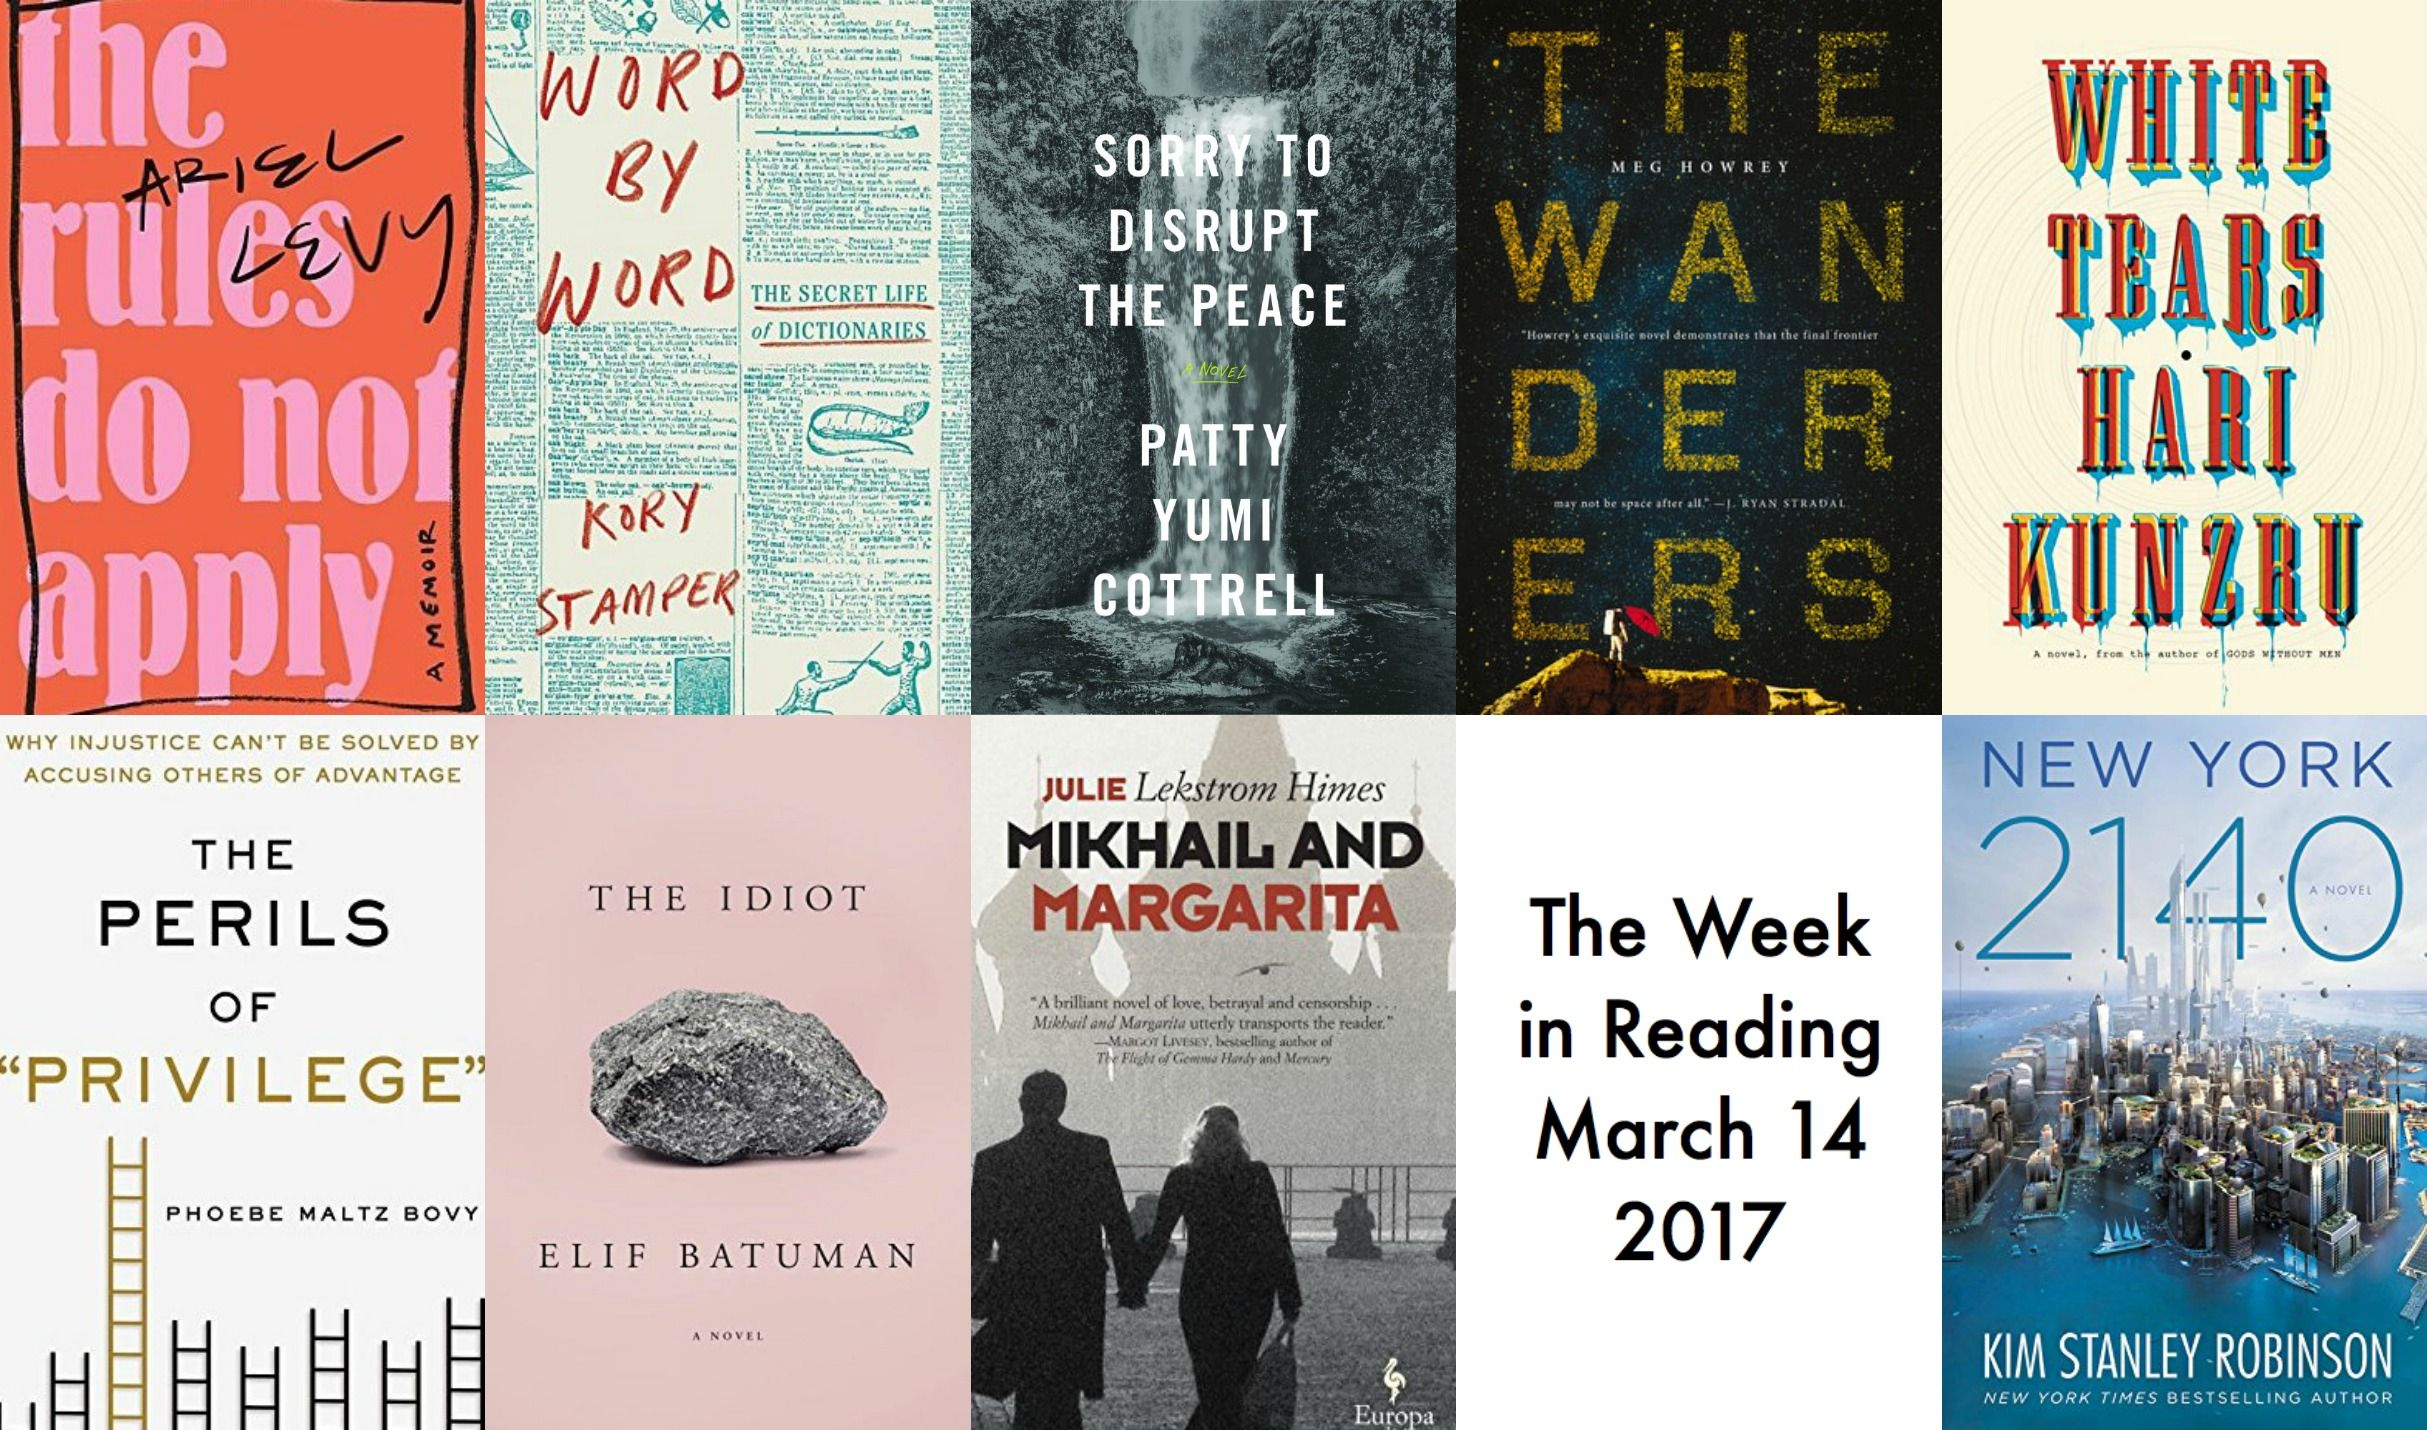 The Week in Reading: The Best New Book Releases for March 14